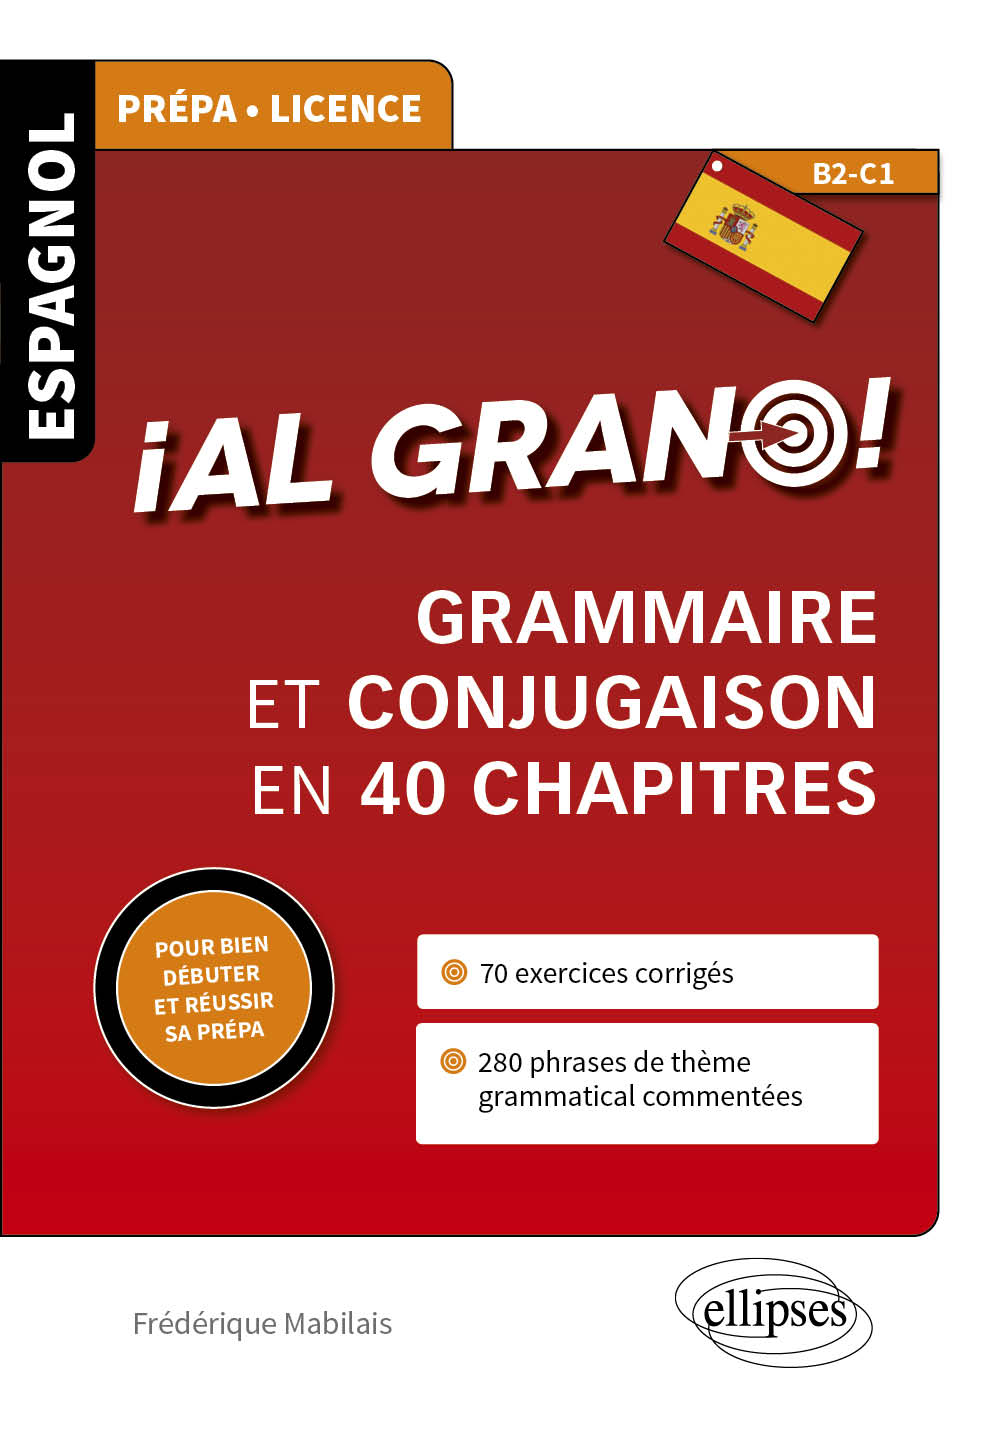 espagnol  100  th u00e8me  80 textes d u2019entra u00eenement  u00e0 la traduction  litt u00e9rature  presse et th u00e8me